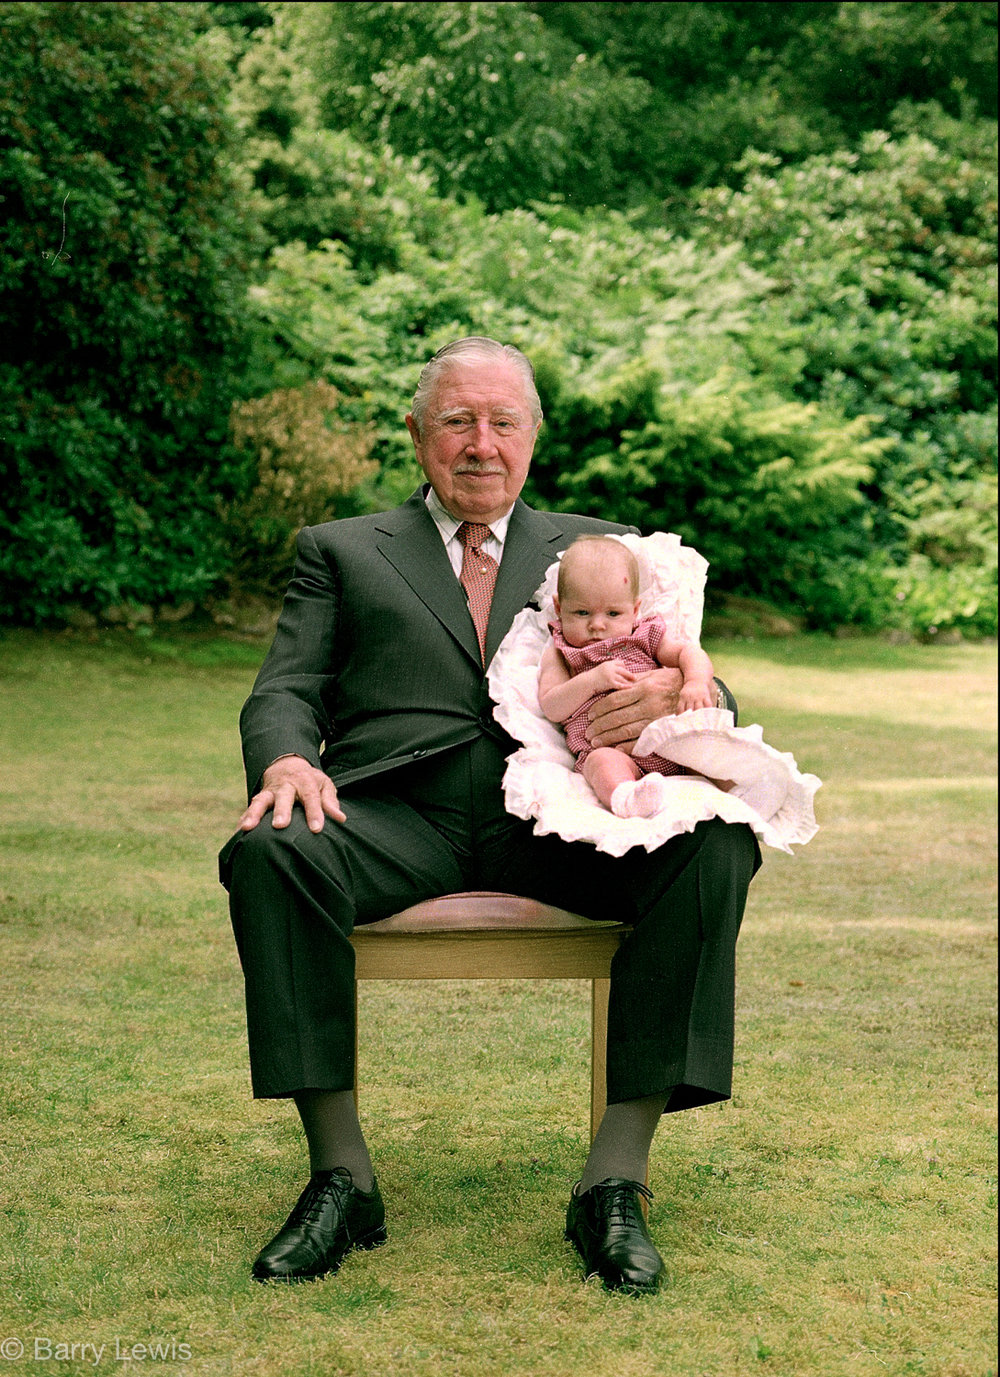 General Augusto Pinochet Ugarte, dictator of Chile, under house arrest in England 2000 with his granddaughter.